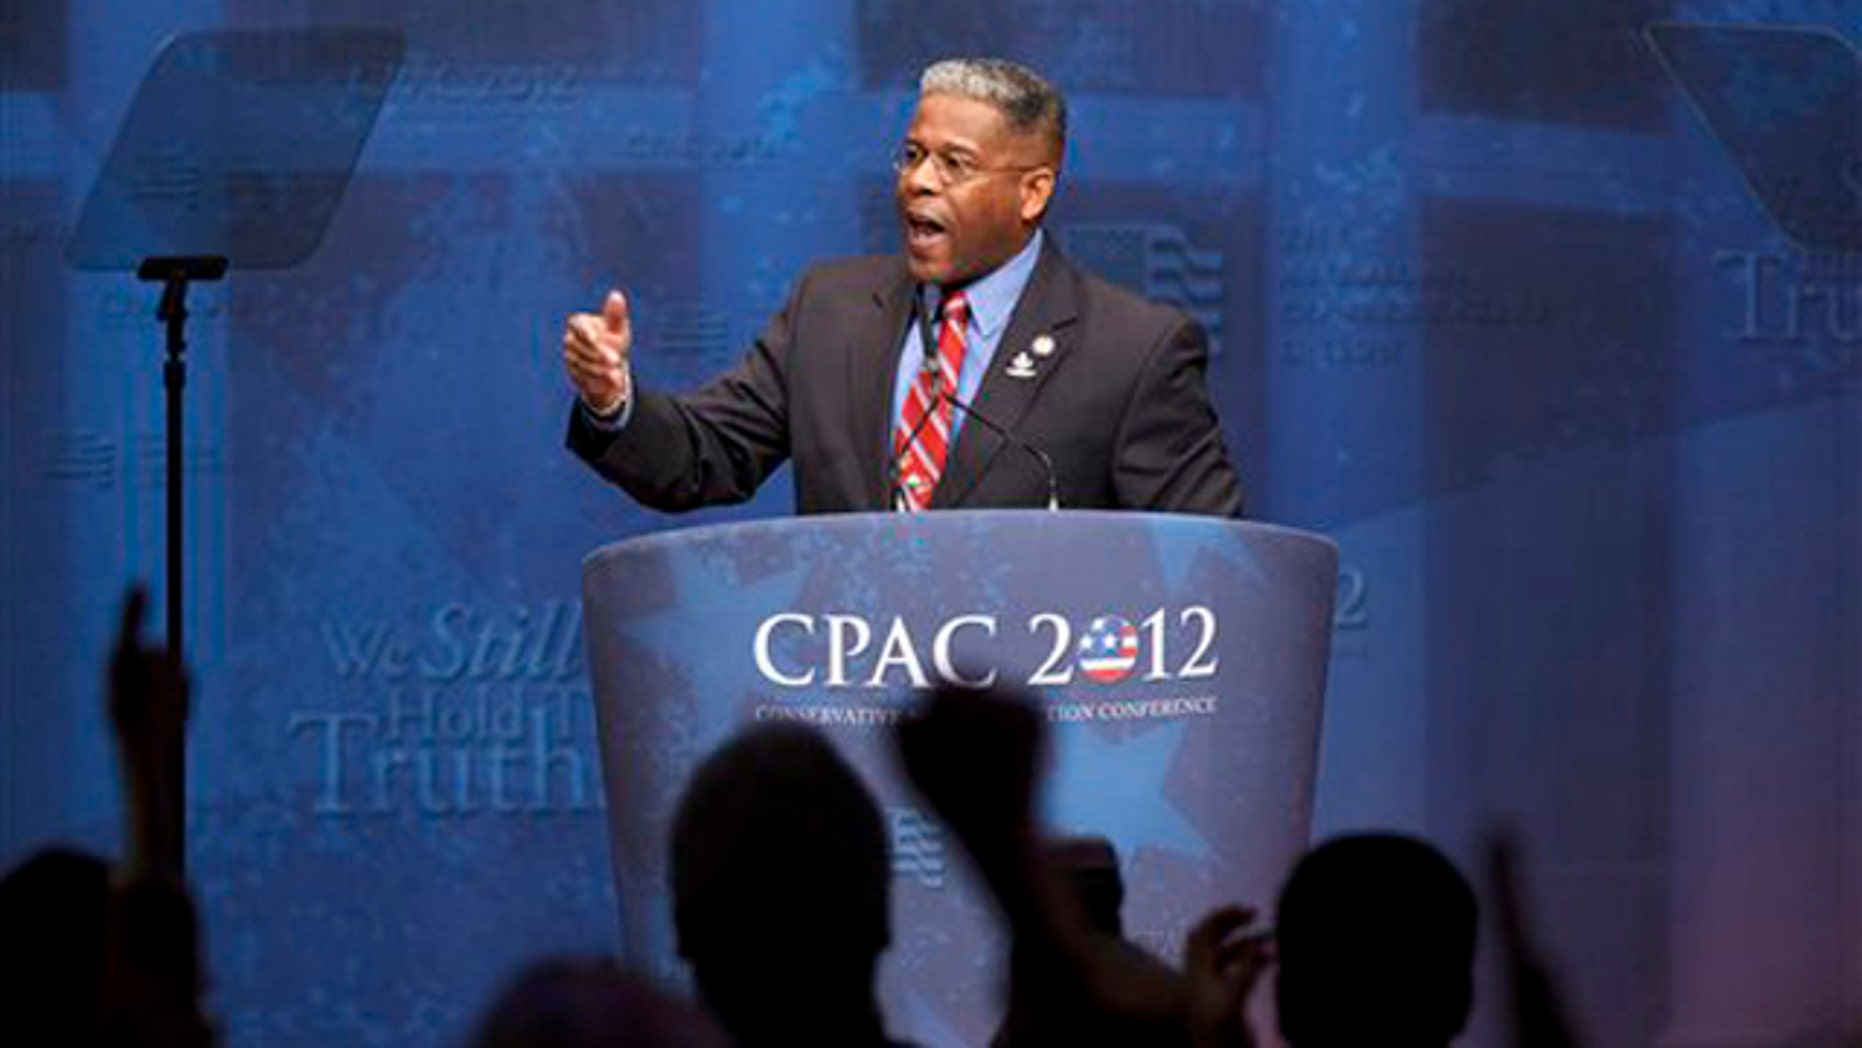 Feb. 10, 2012: Rep. Allen West speaks at the Conservative Political Action Conference in Washington.